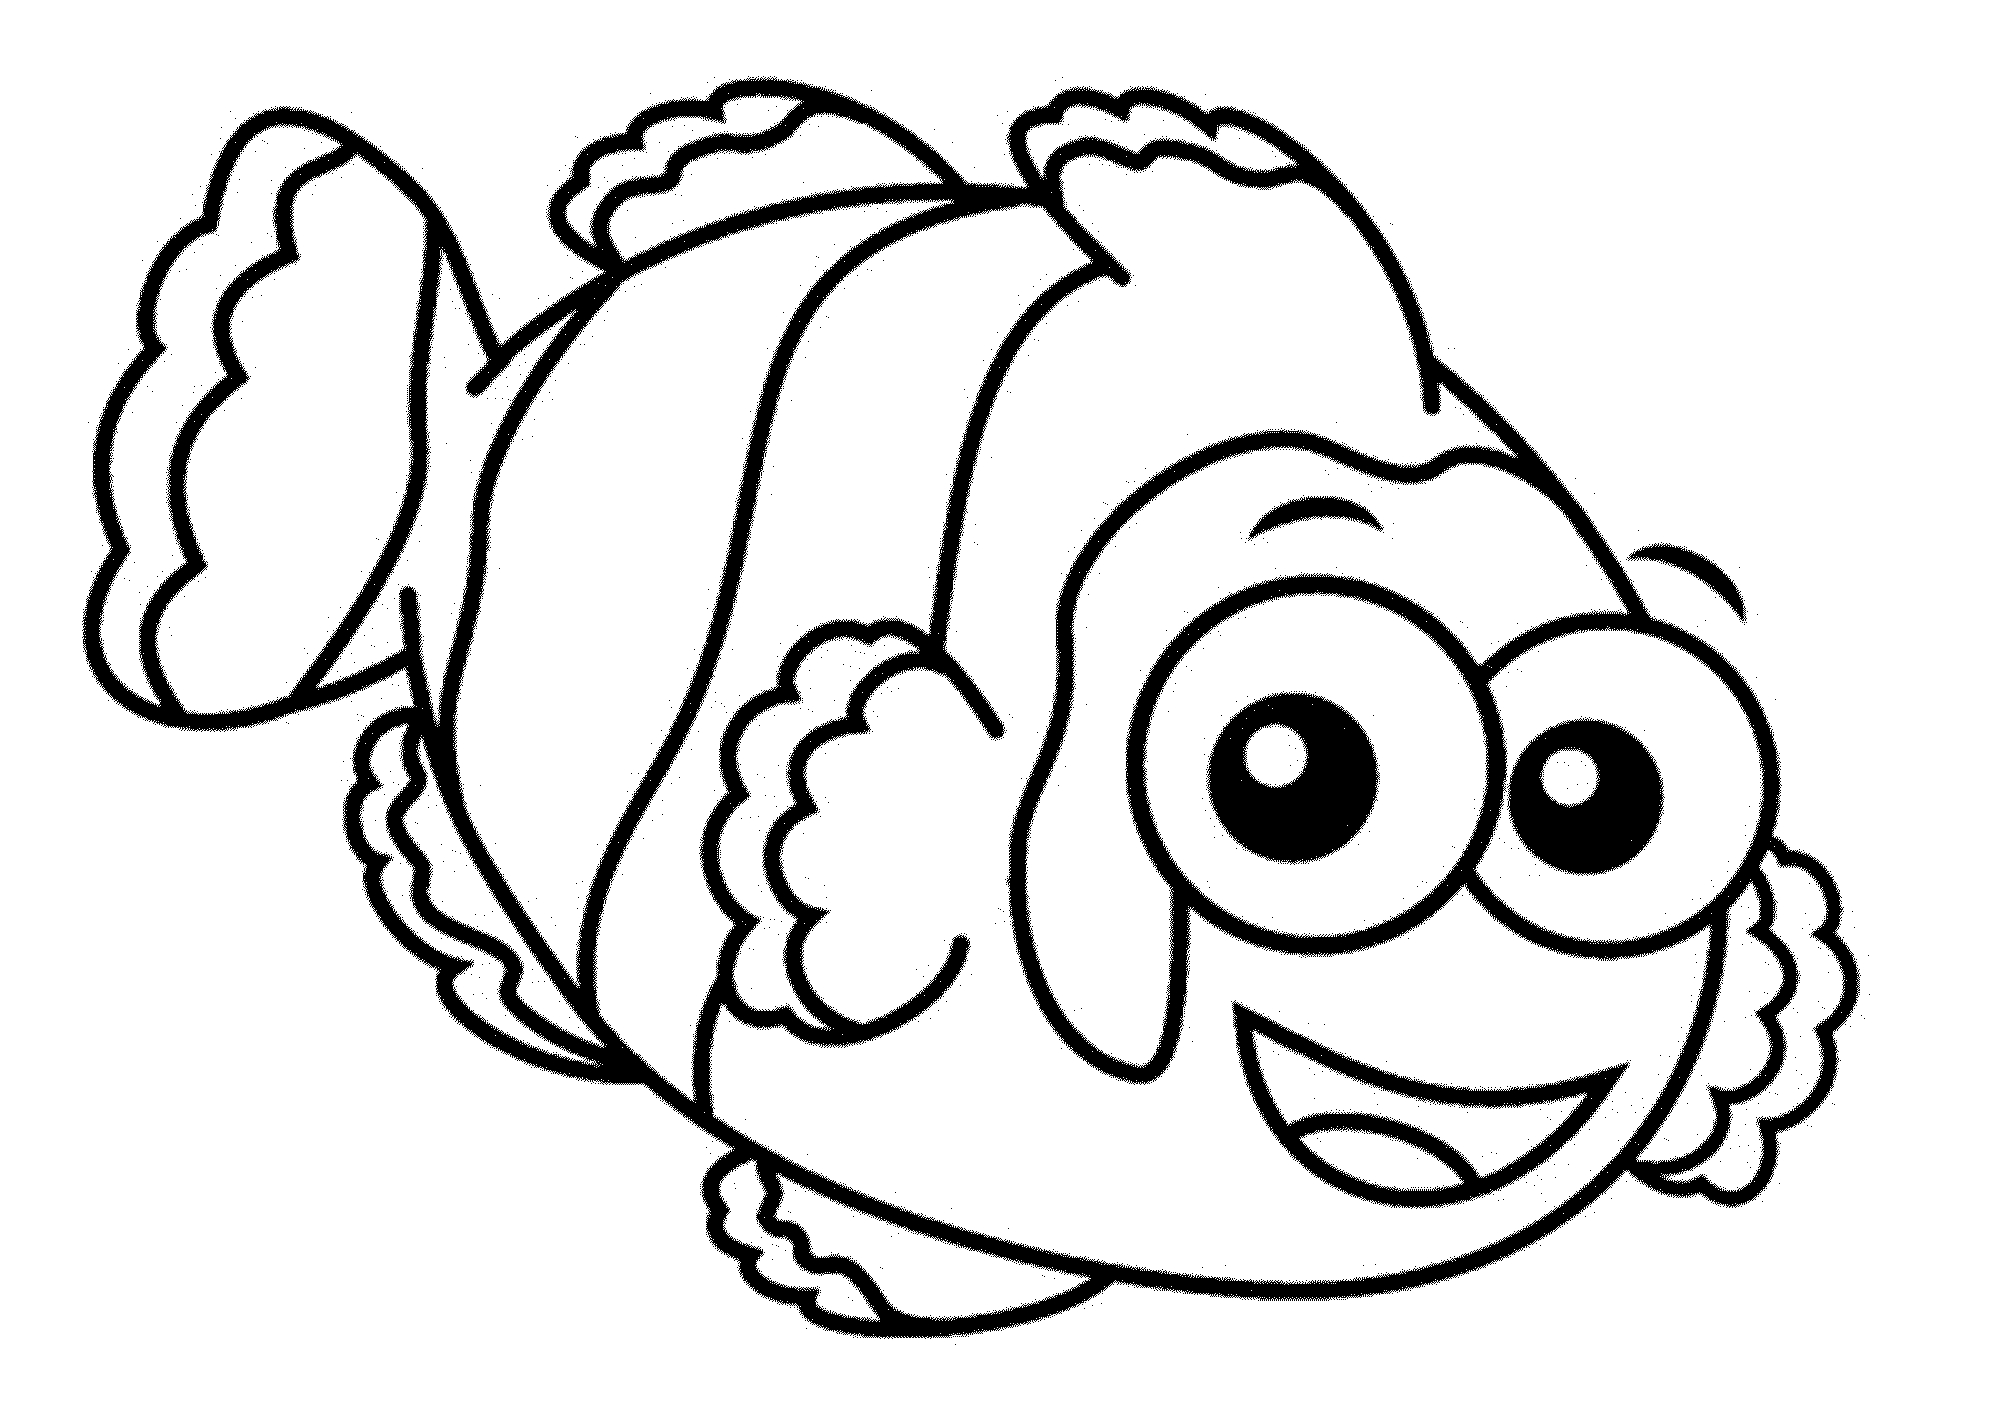 Kids Color Pages Print Download Cute And Educative Fish Coloring Pages